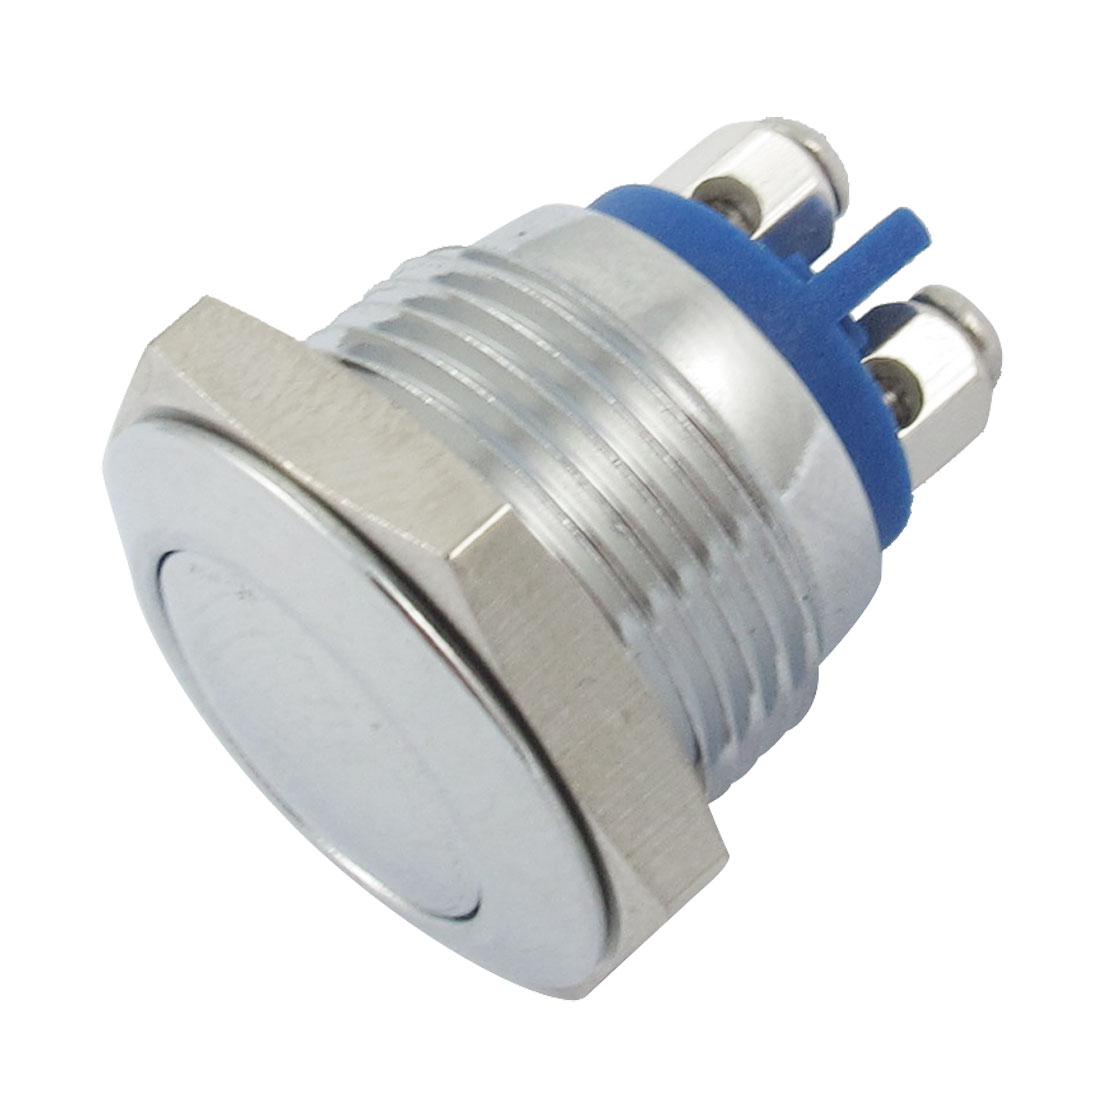 AC 250V 3A 1NO Two Screw Terminals Round Metal Push Button Switch